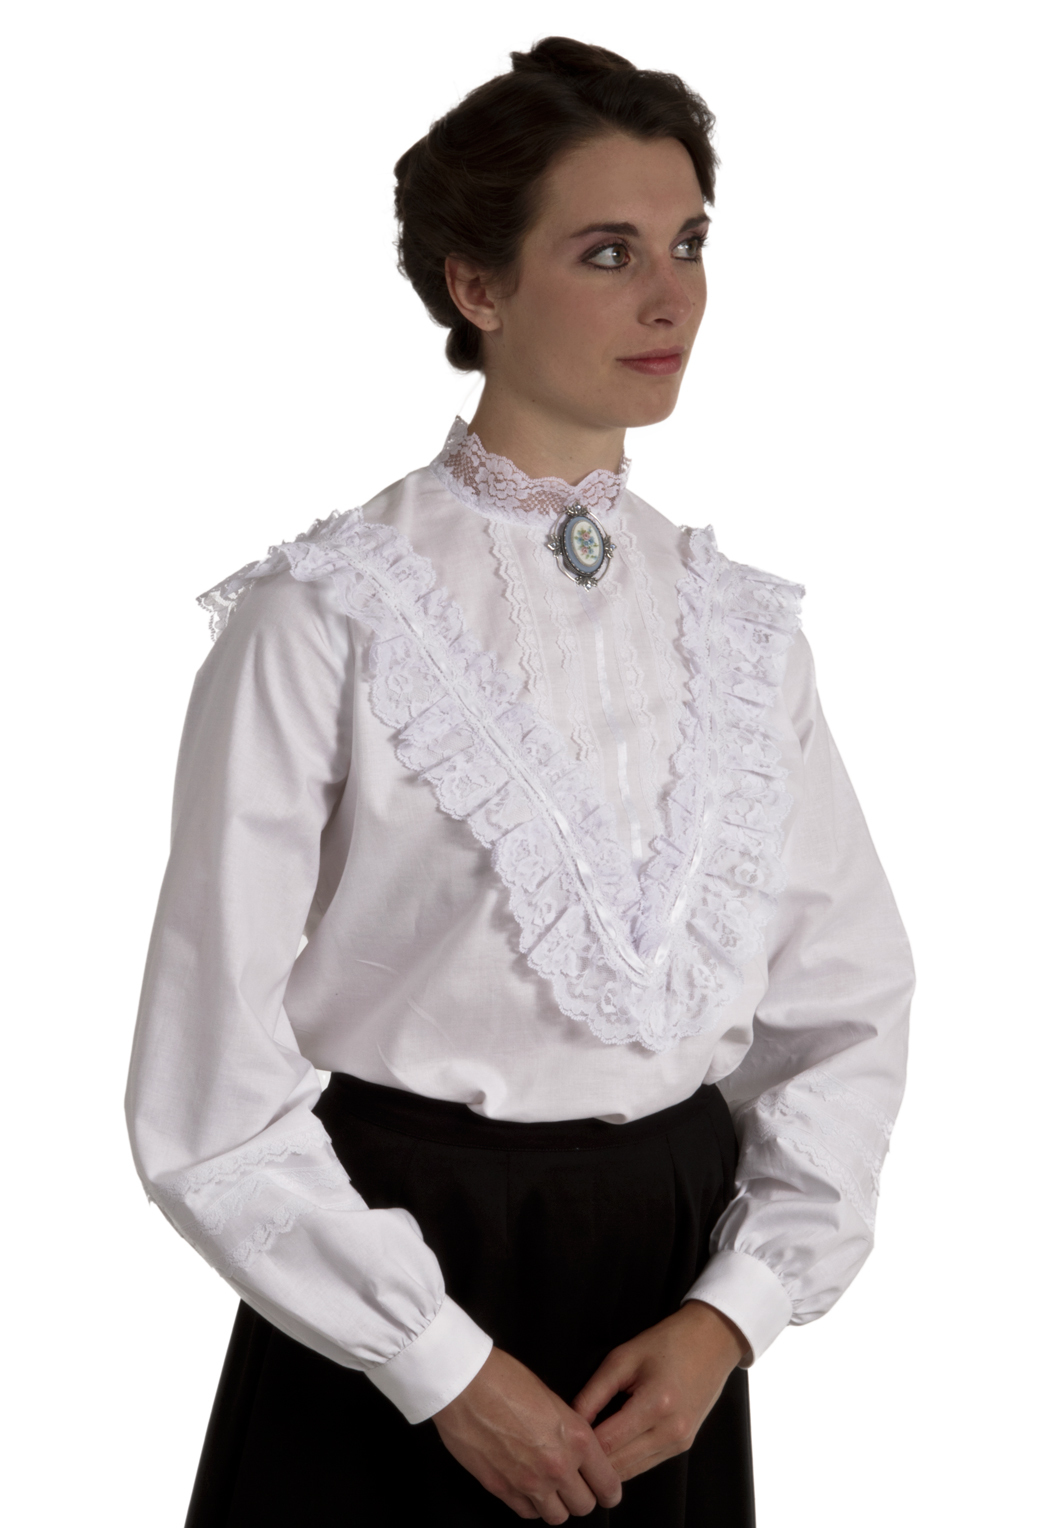 Adele Edwardian Blouse